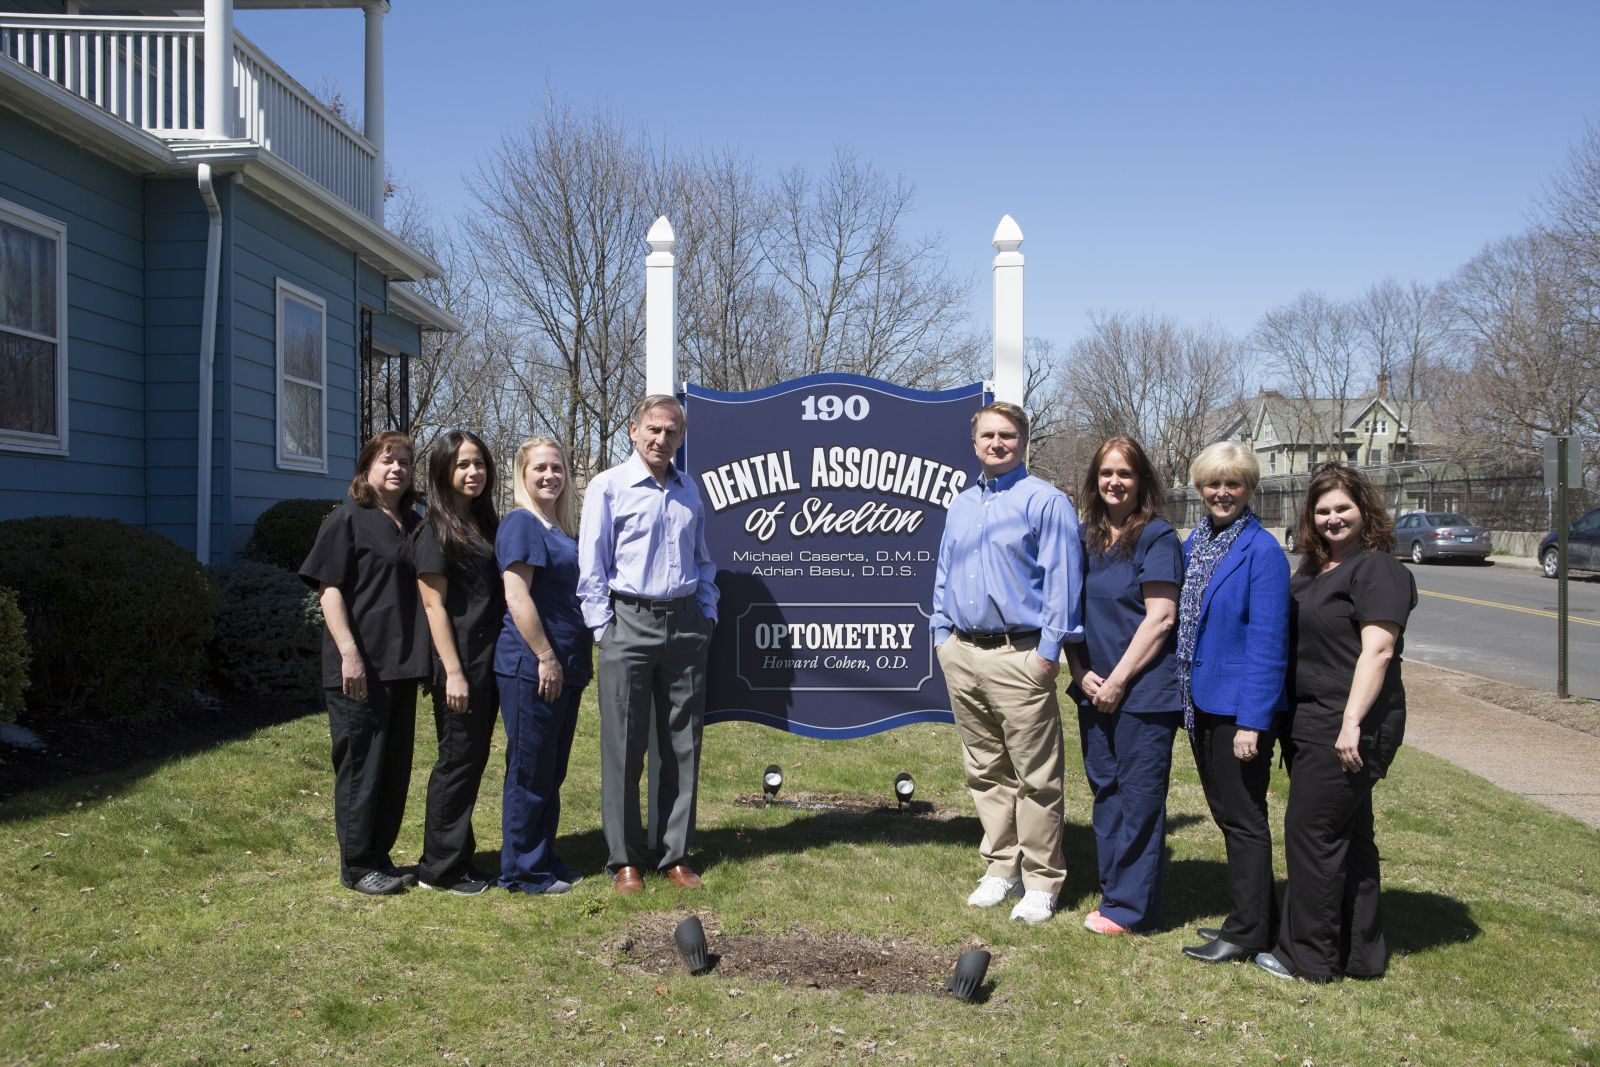 Dentist in Shelton, CT